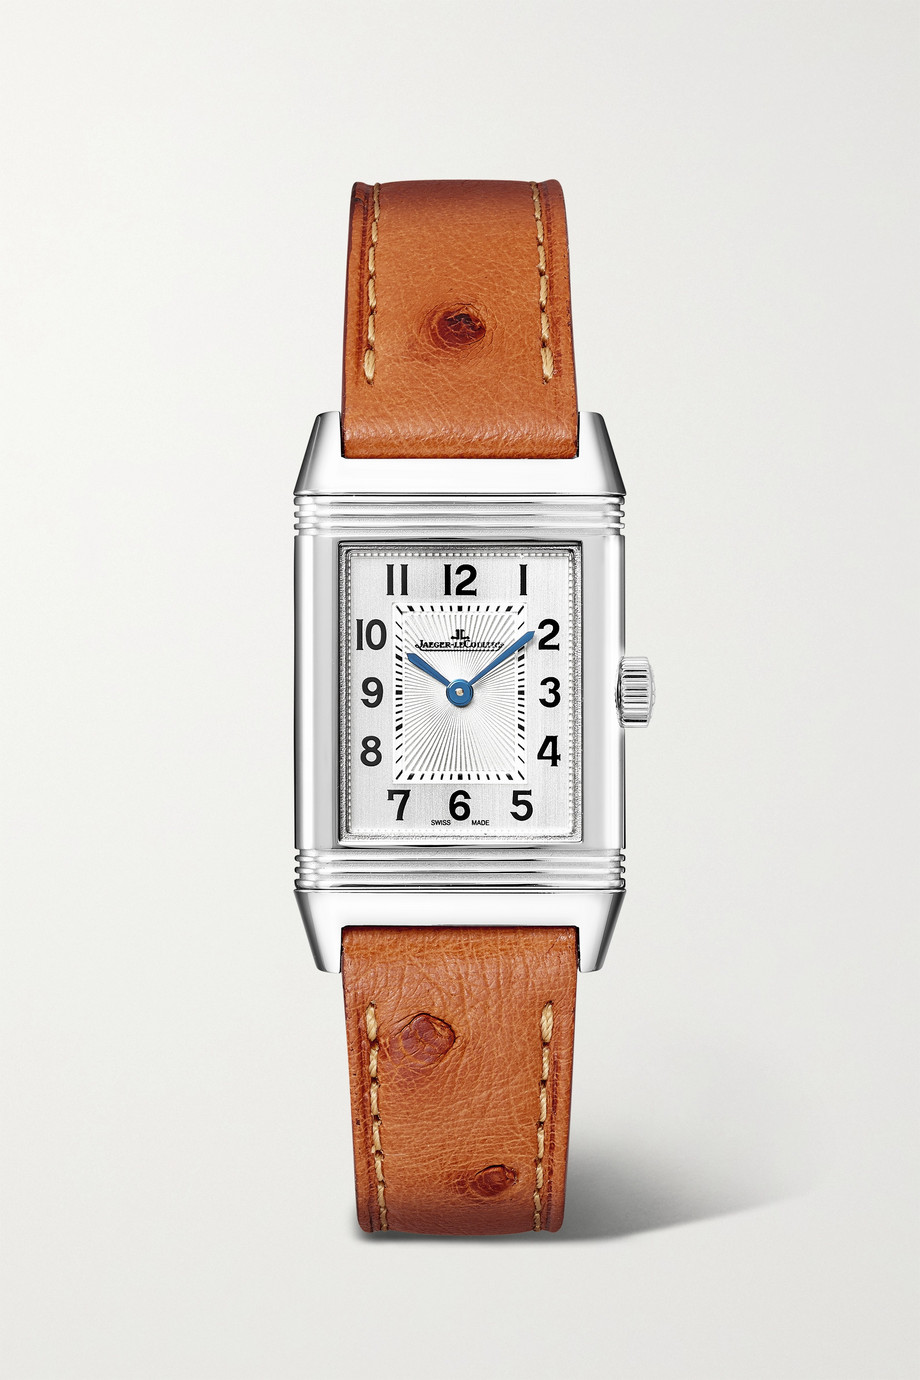 Jaeger-LeCoultre Reverso Classic Hand-Wound 21mm small stainless steel and ostrich watch